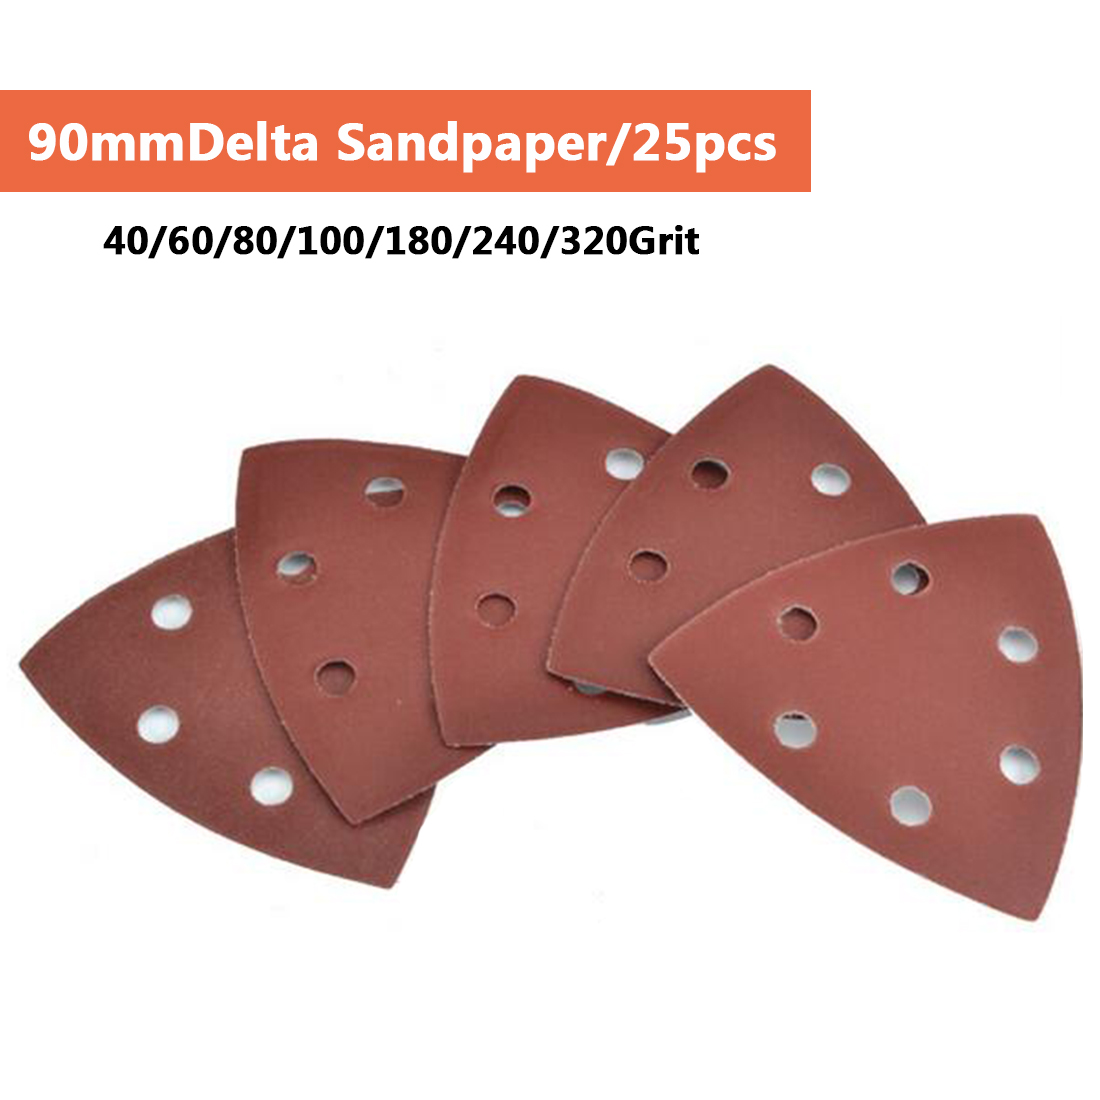 Triangle 6 Hole Self-adhesive Sandpaper 90mm Delta Sander Sand Paper Hook & Loop Sandpaper Disc Abrasive Tools For Polishing